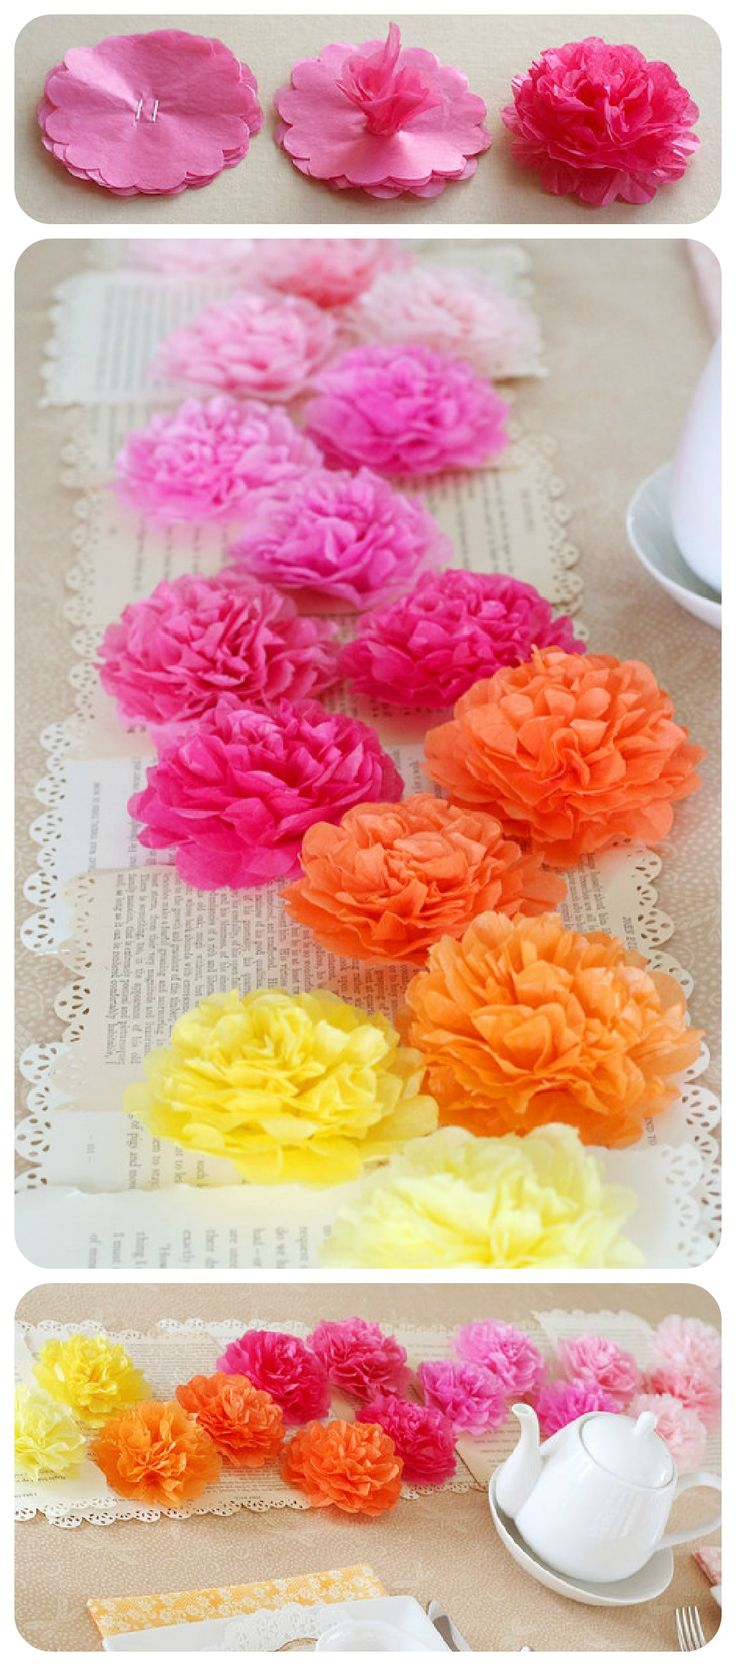 Tissue Paper Flower Runner: Use around 8 sheets of tissue paper for each flower and punched all 8 layers a